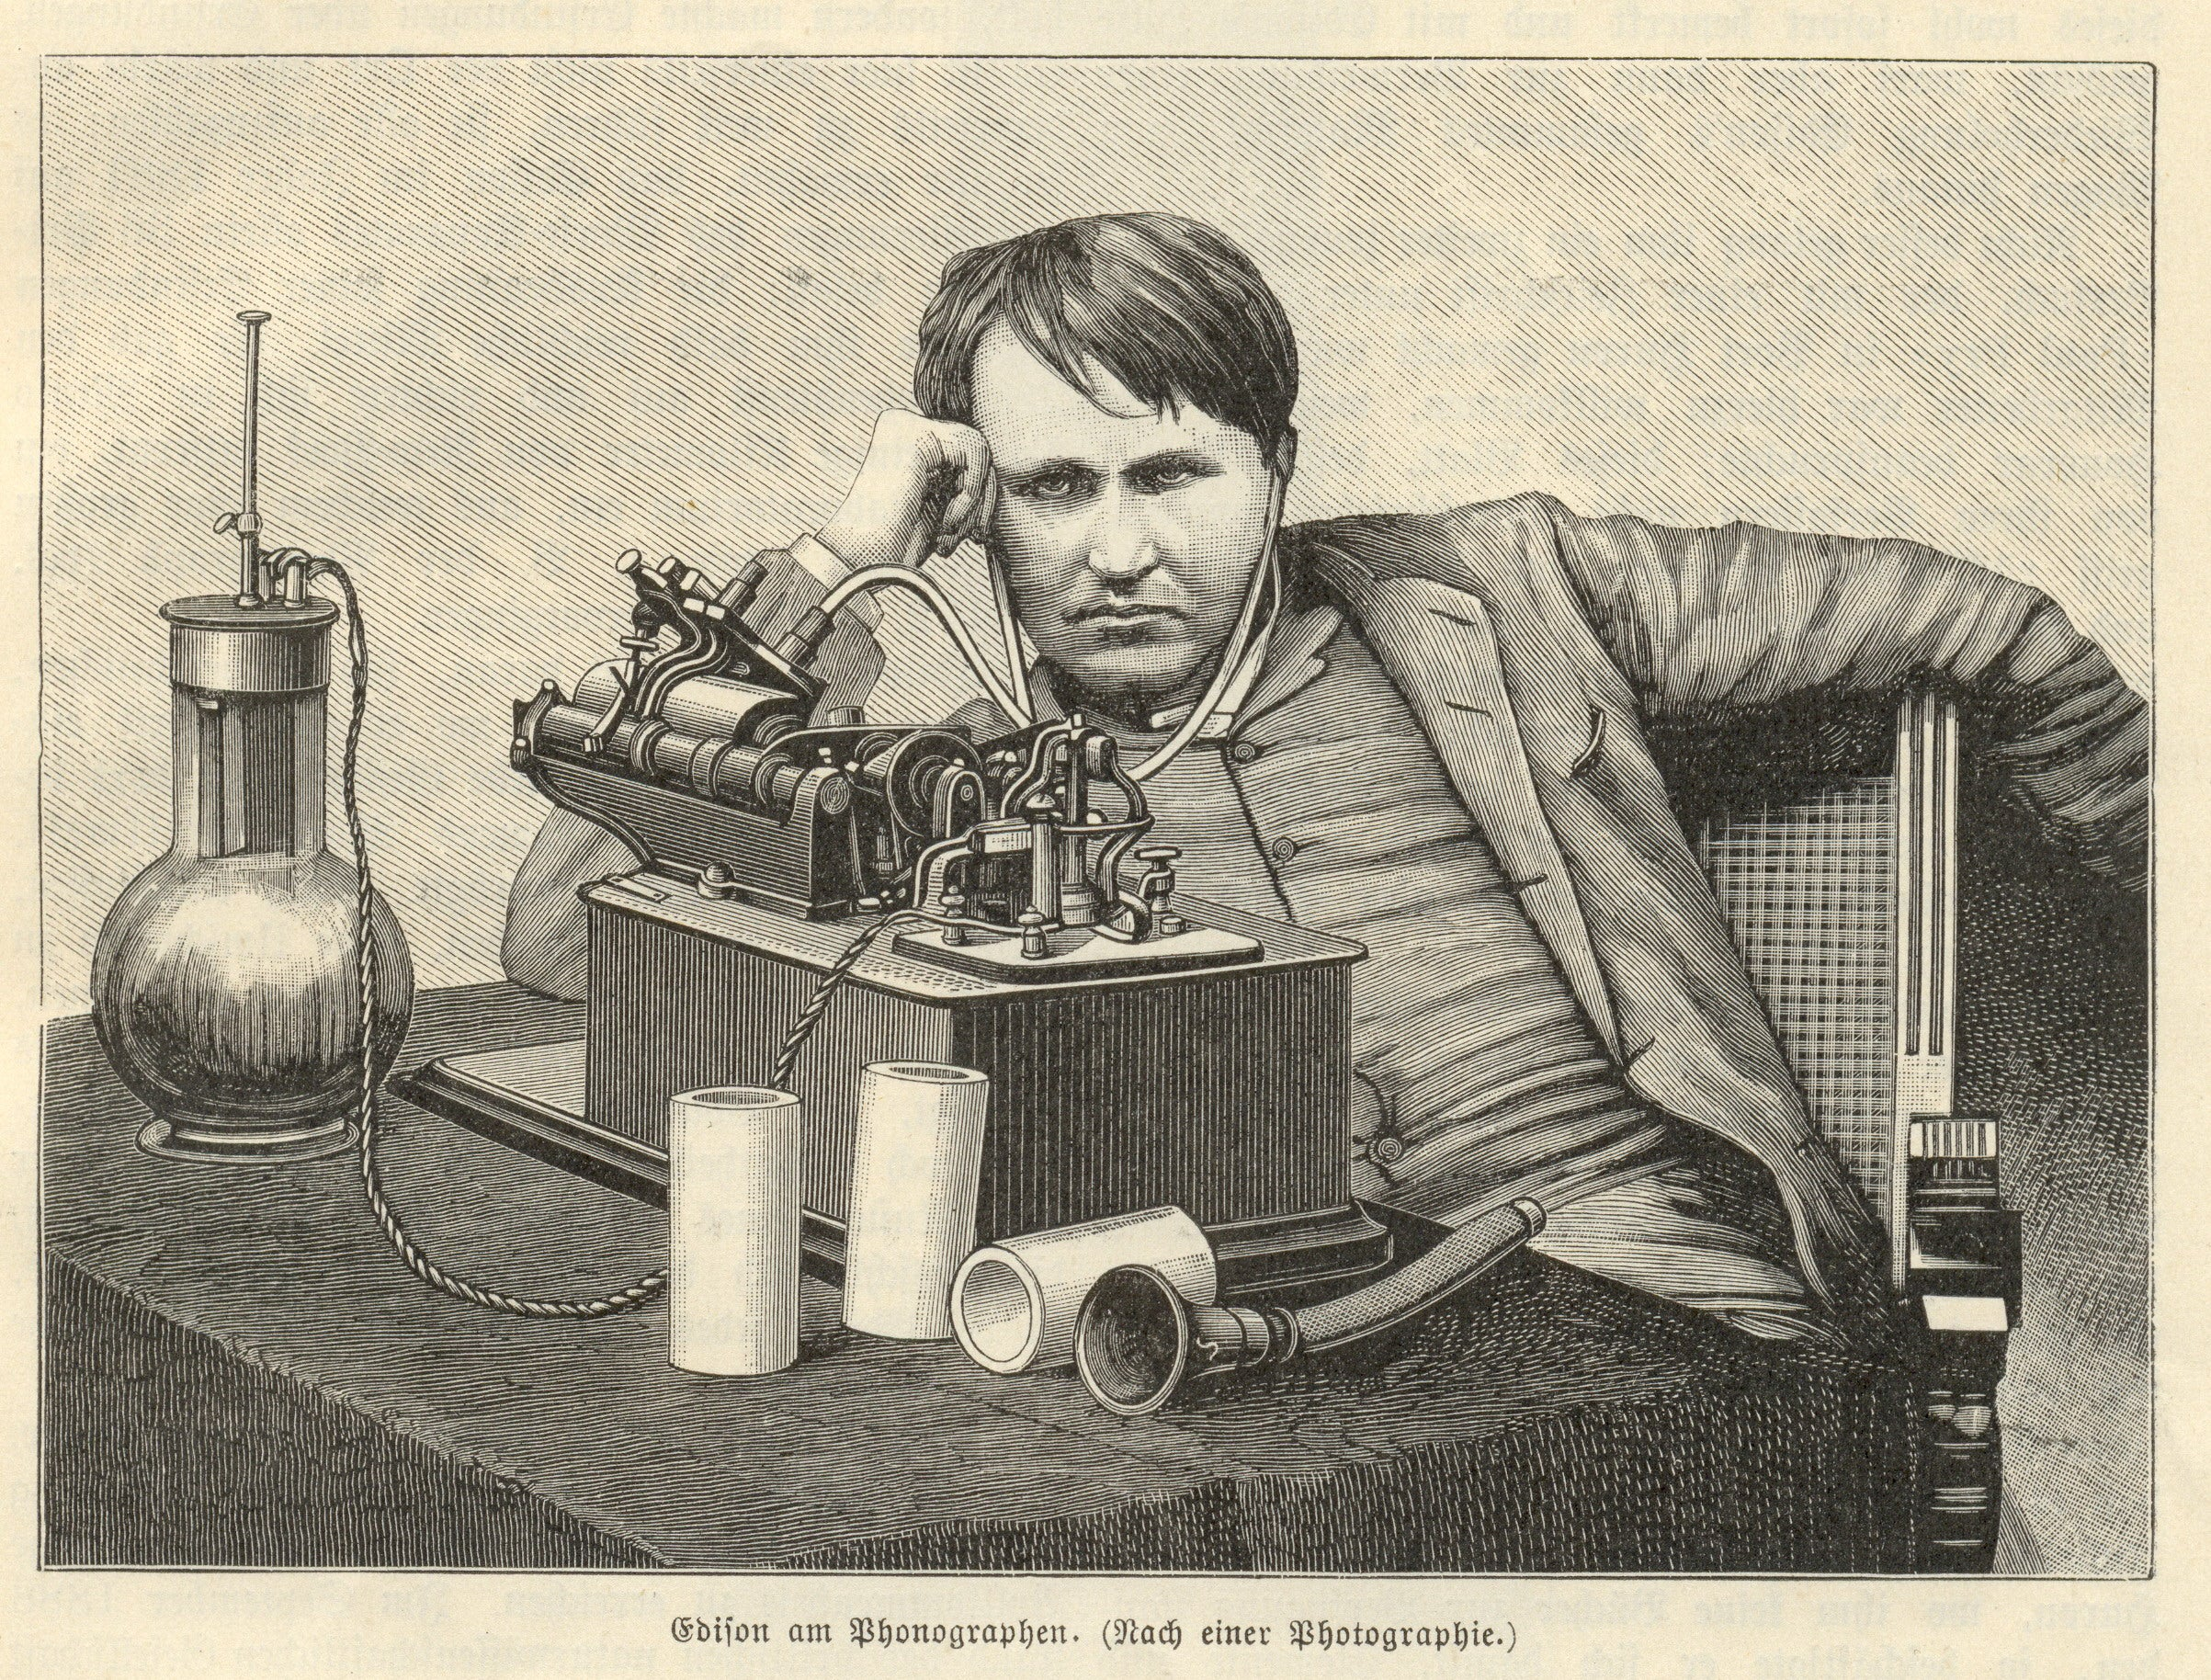 Tesla Versus Edison: Myth and Style in Technological History